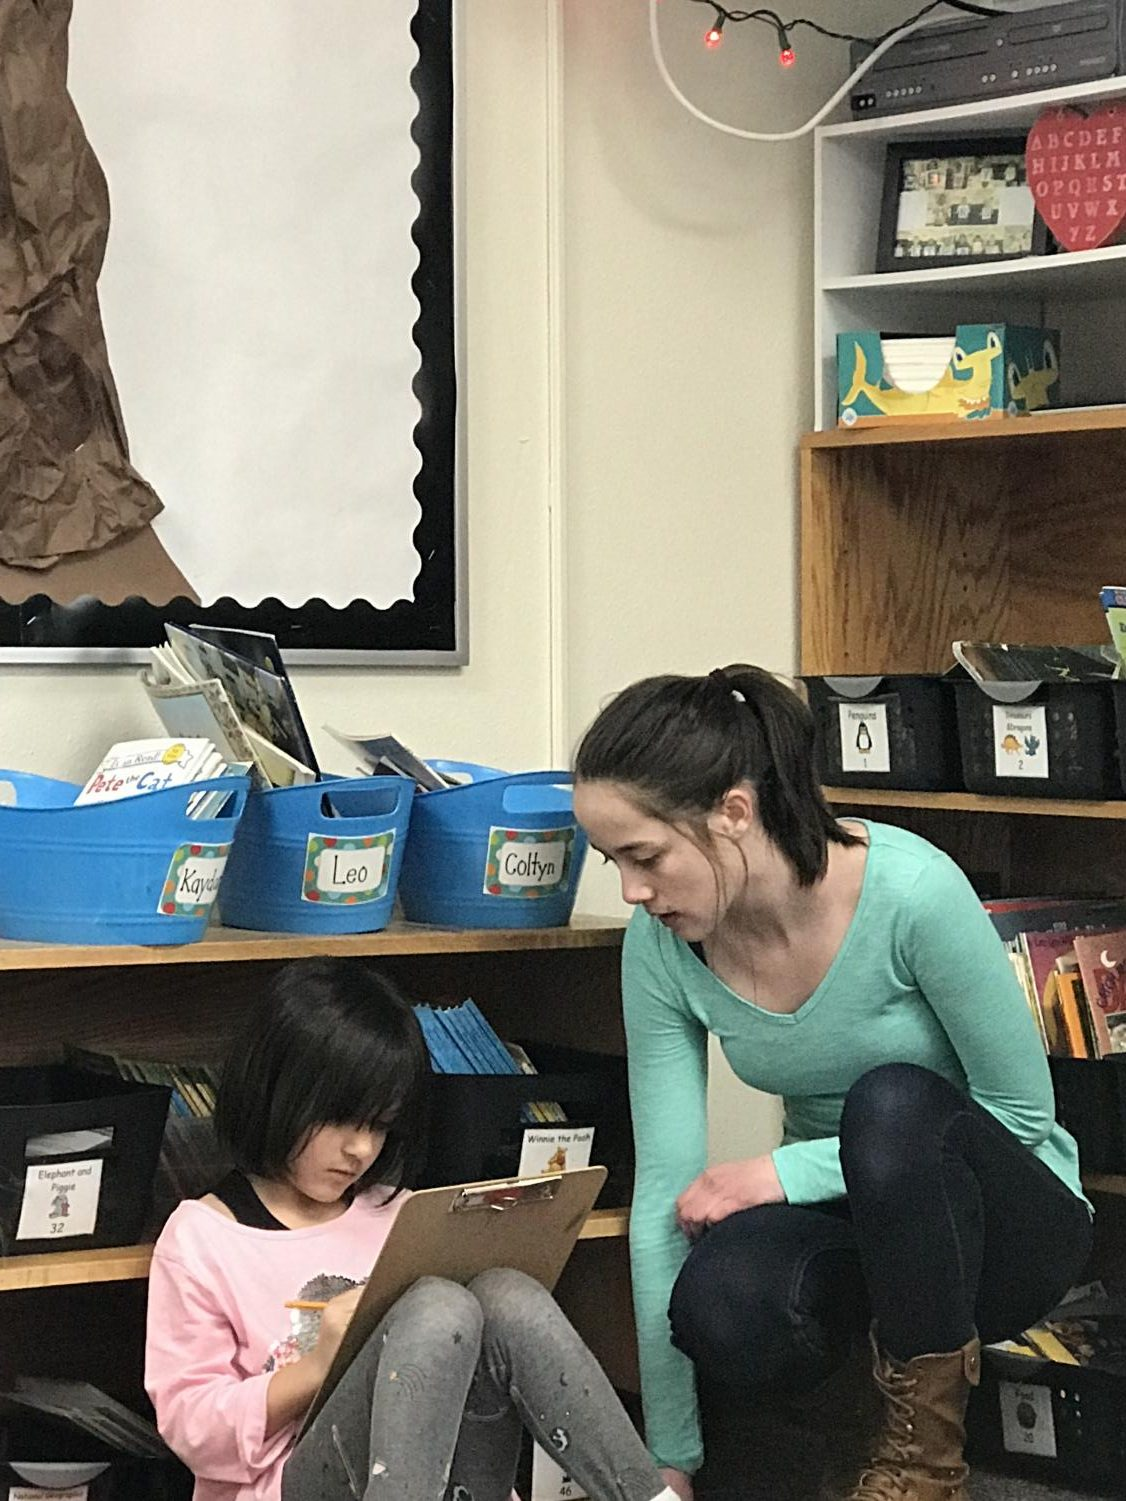 Brianna Pittman helps a first grader in Taylor Neibauer's class during her career internship seventh period.